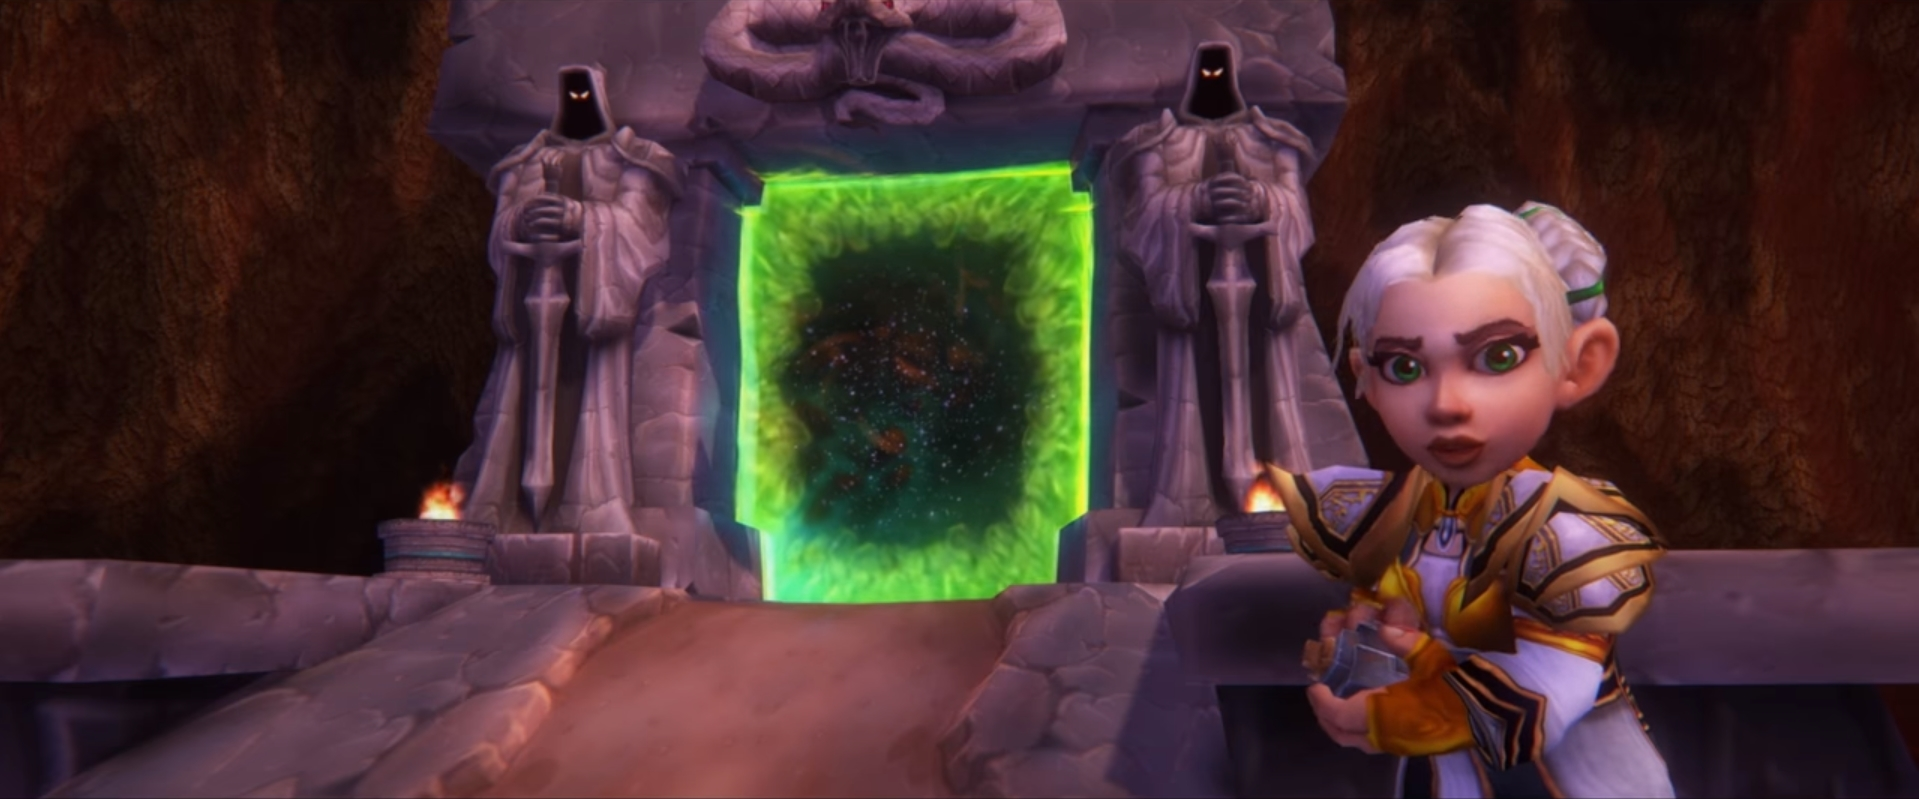 Blizzard Has Announced World Of Warcraft Classic: The Burning Crusade For A 2021 Release